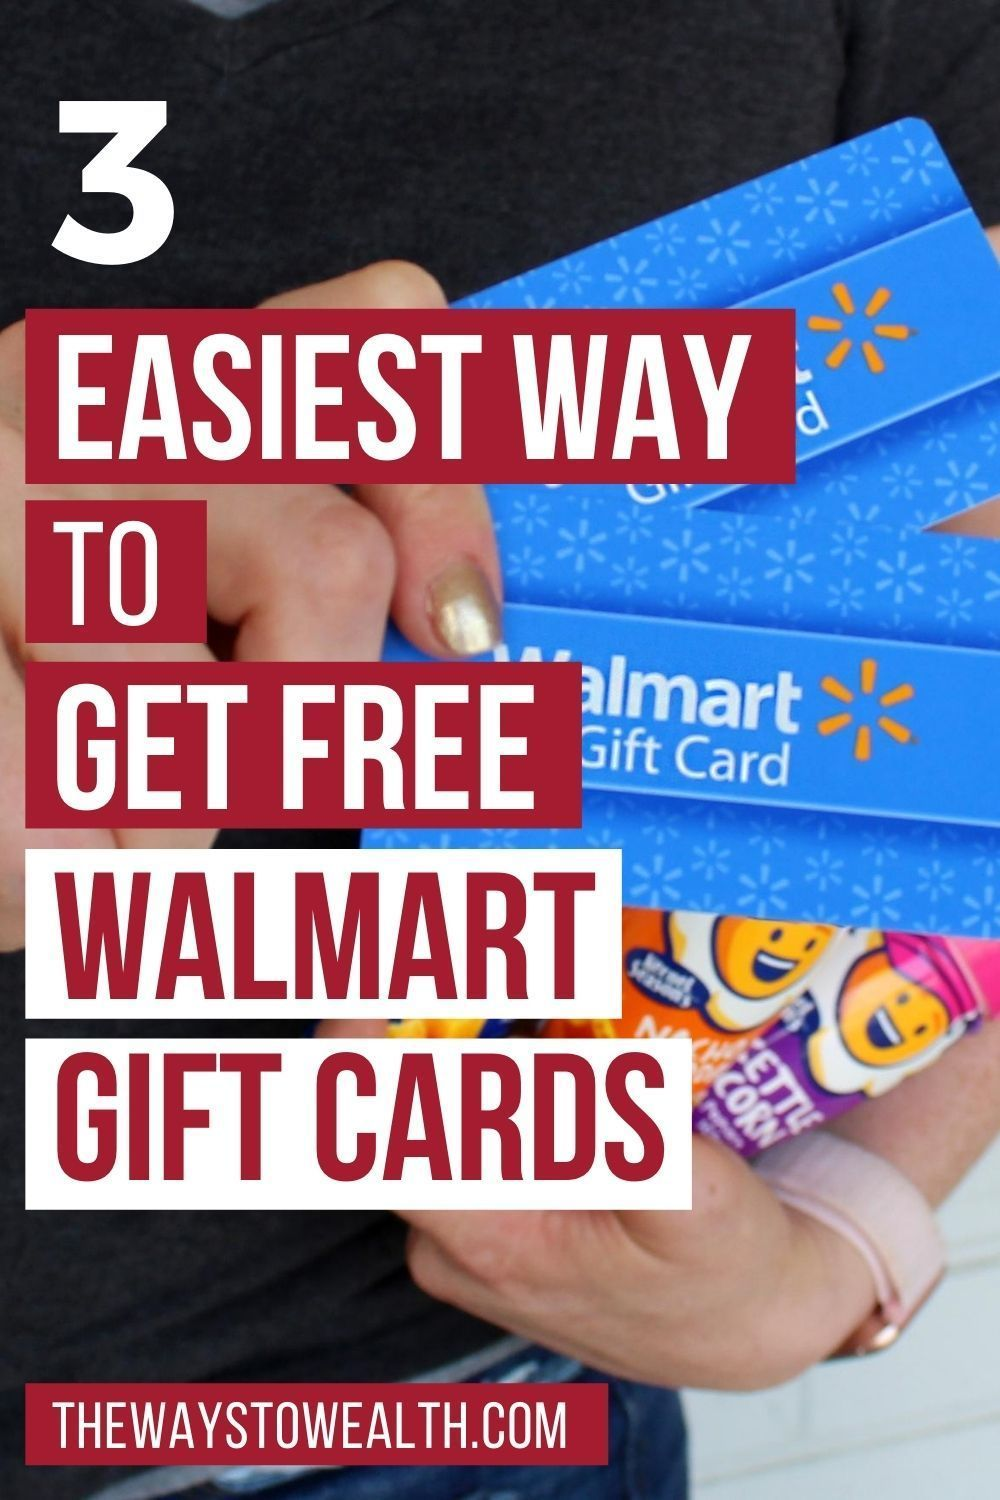 3 easiest way to get free walmart gift cards in 2020